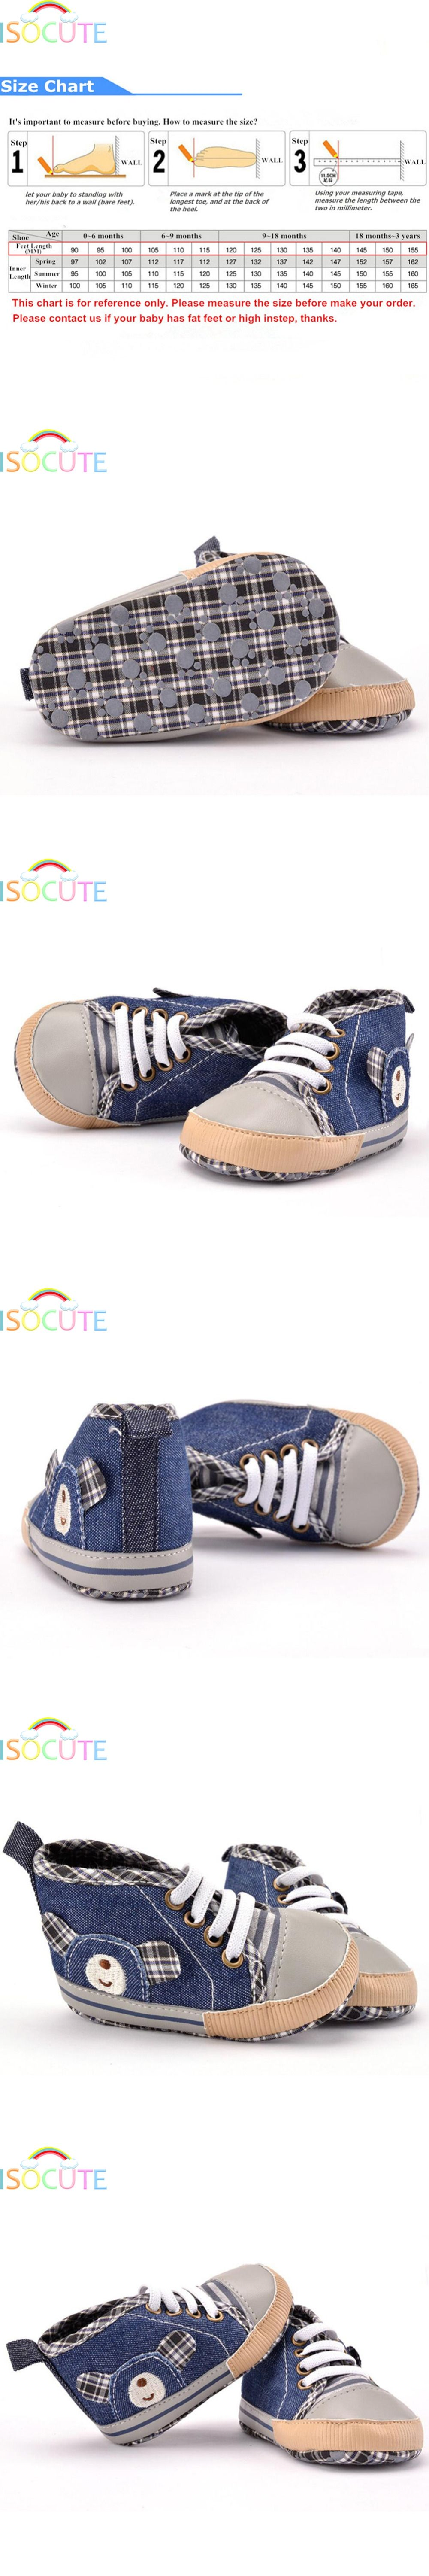 ISOCUTE Novelty Cute Bear Baby Boy Shoes Denim Blue Cartoon Kids